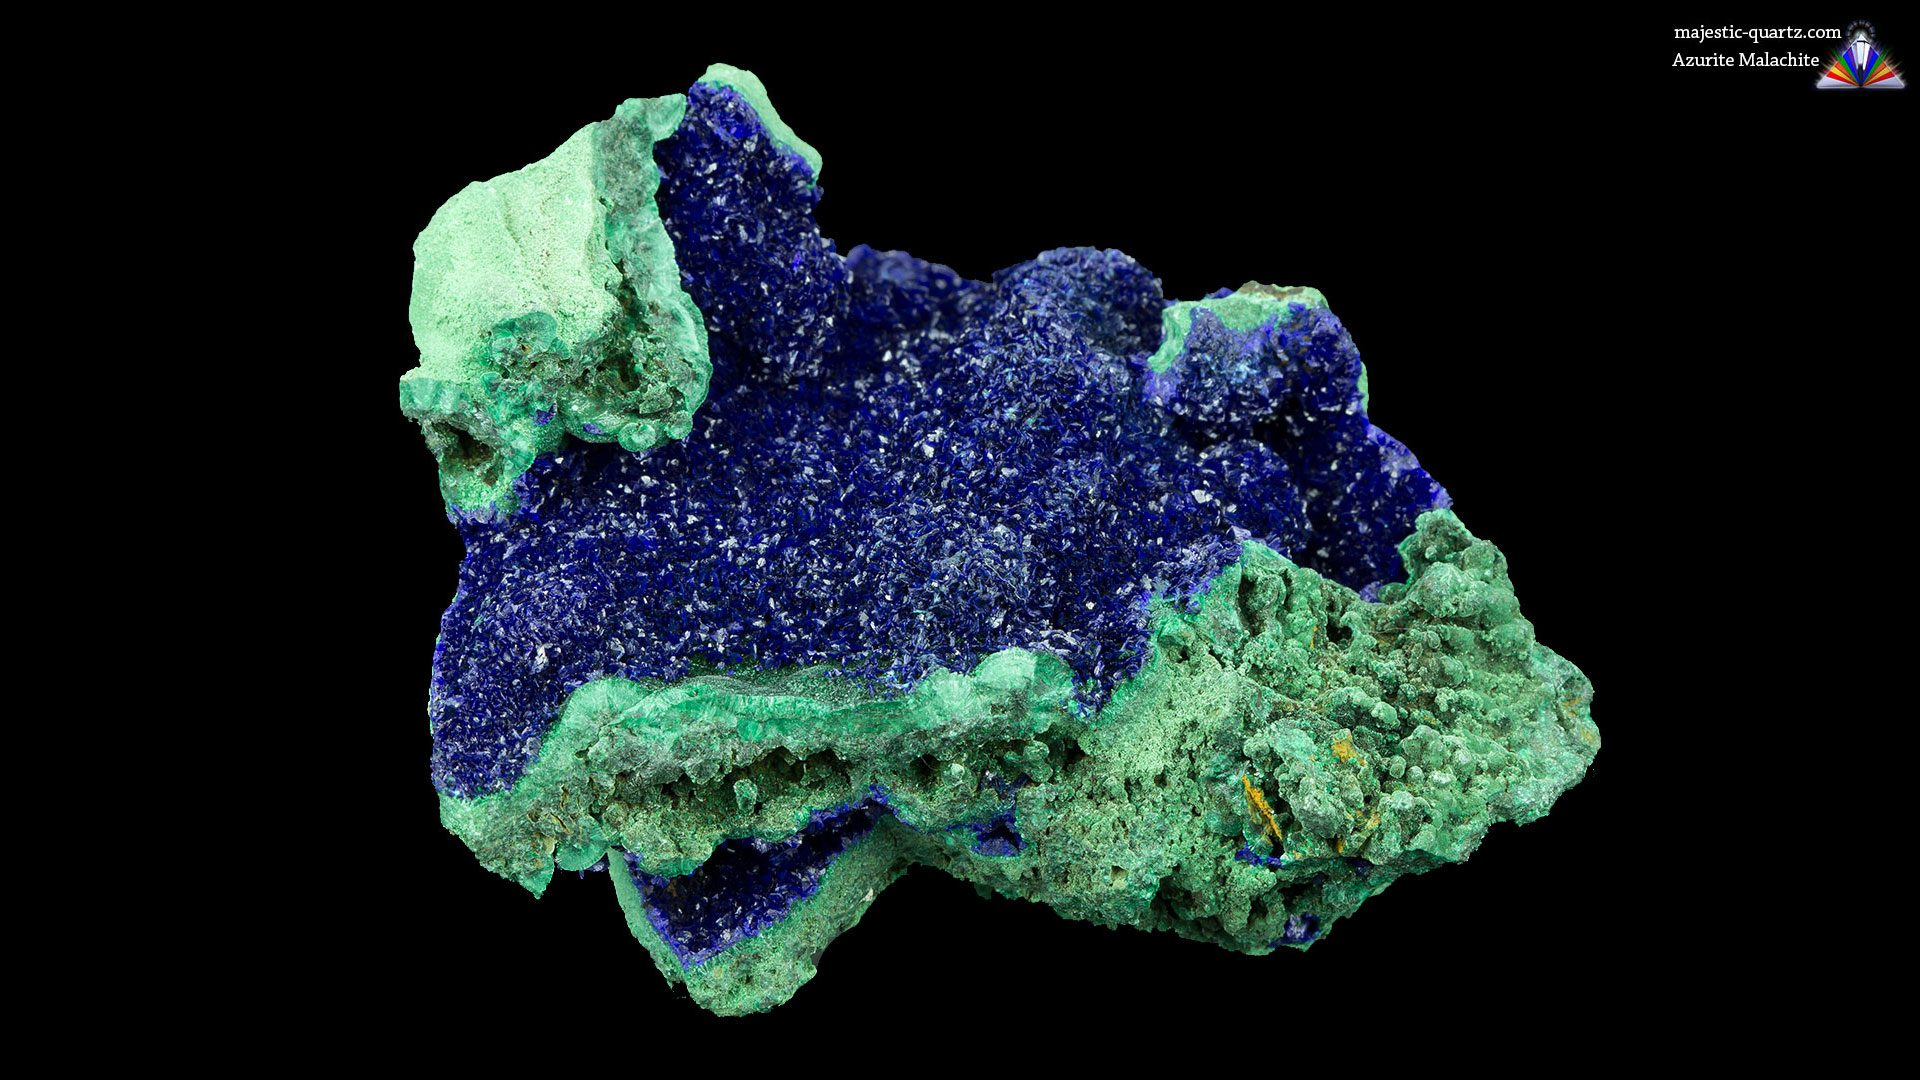 Azurite Malachite Crystal Specimen - Photograph by Anthony Bradford